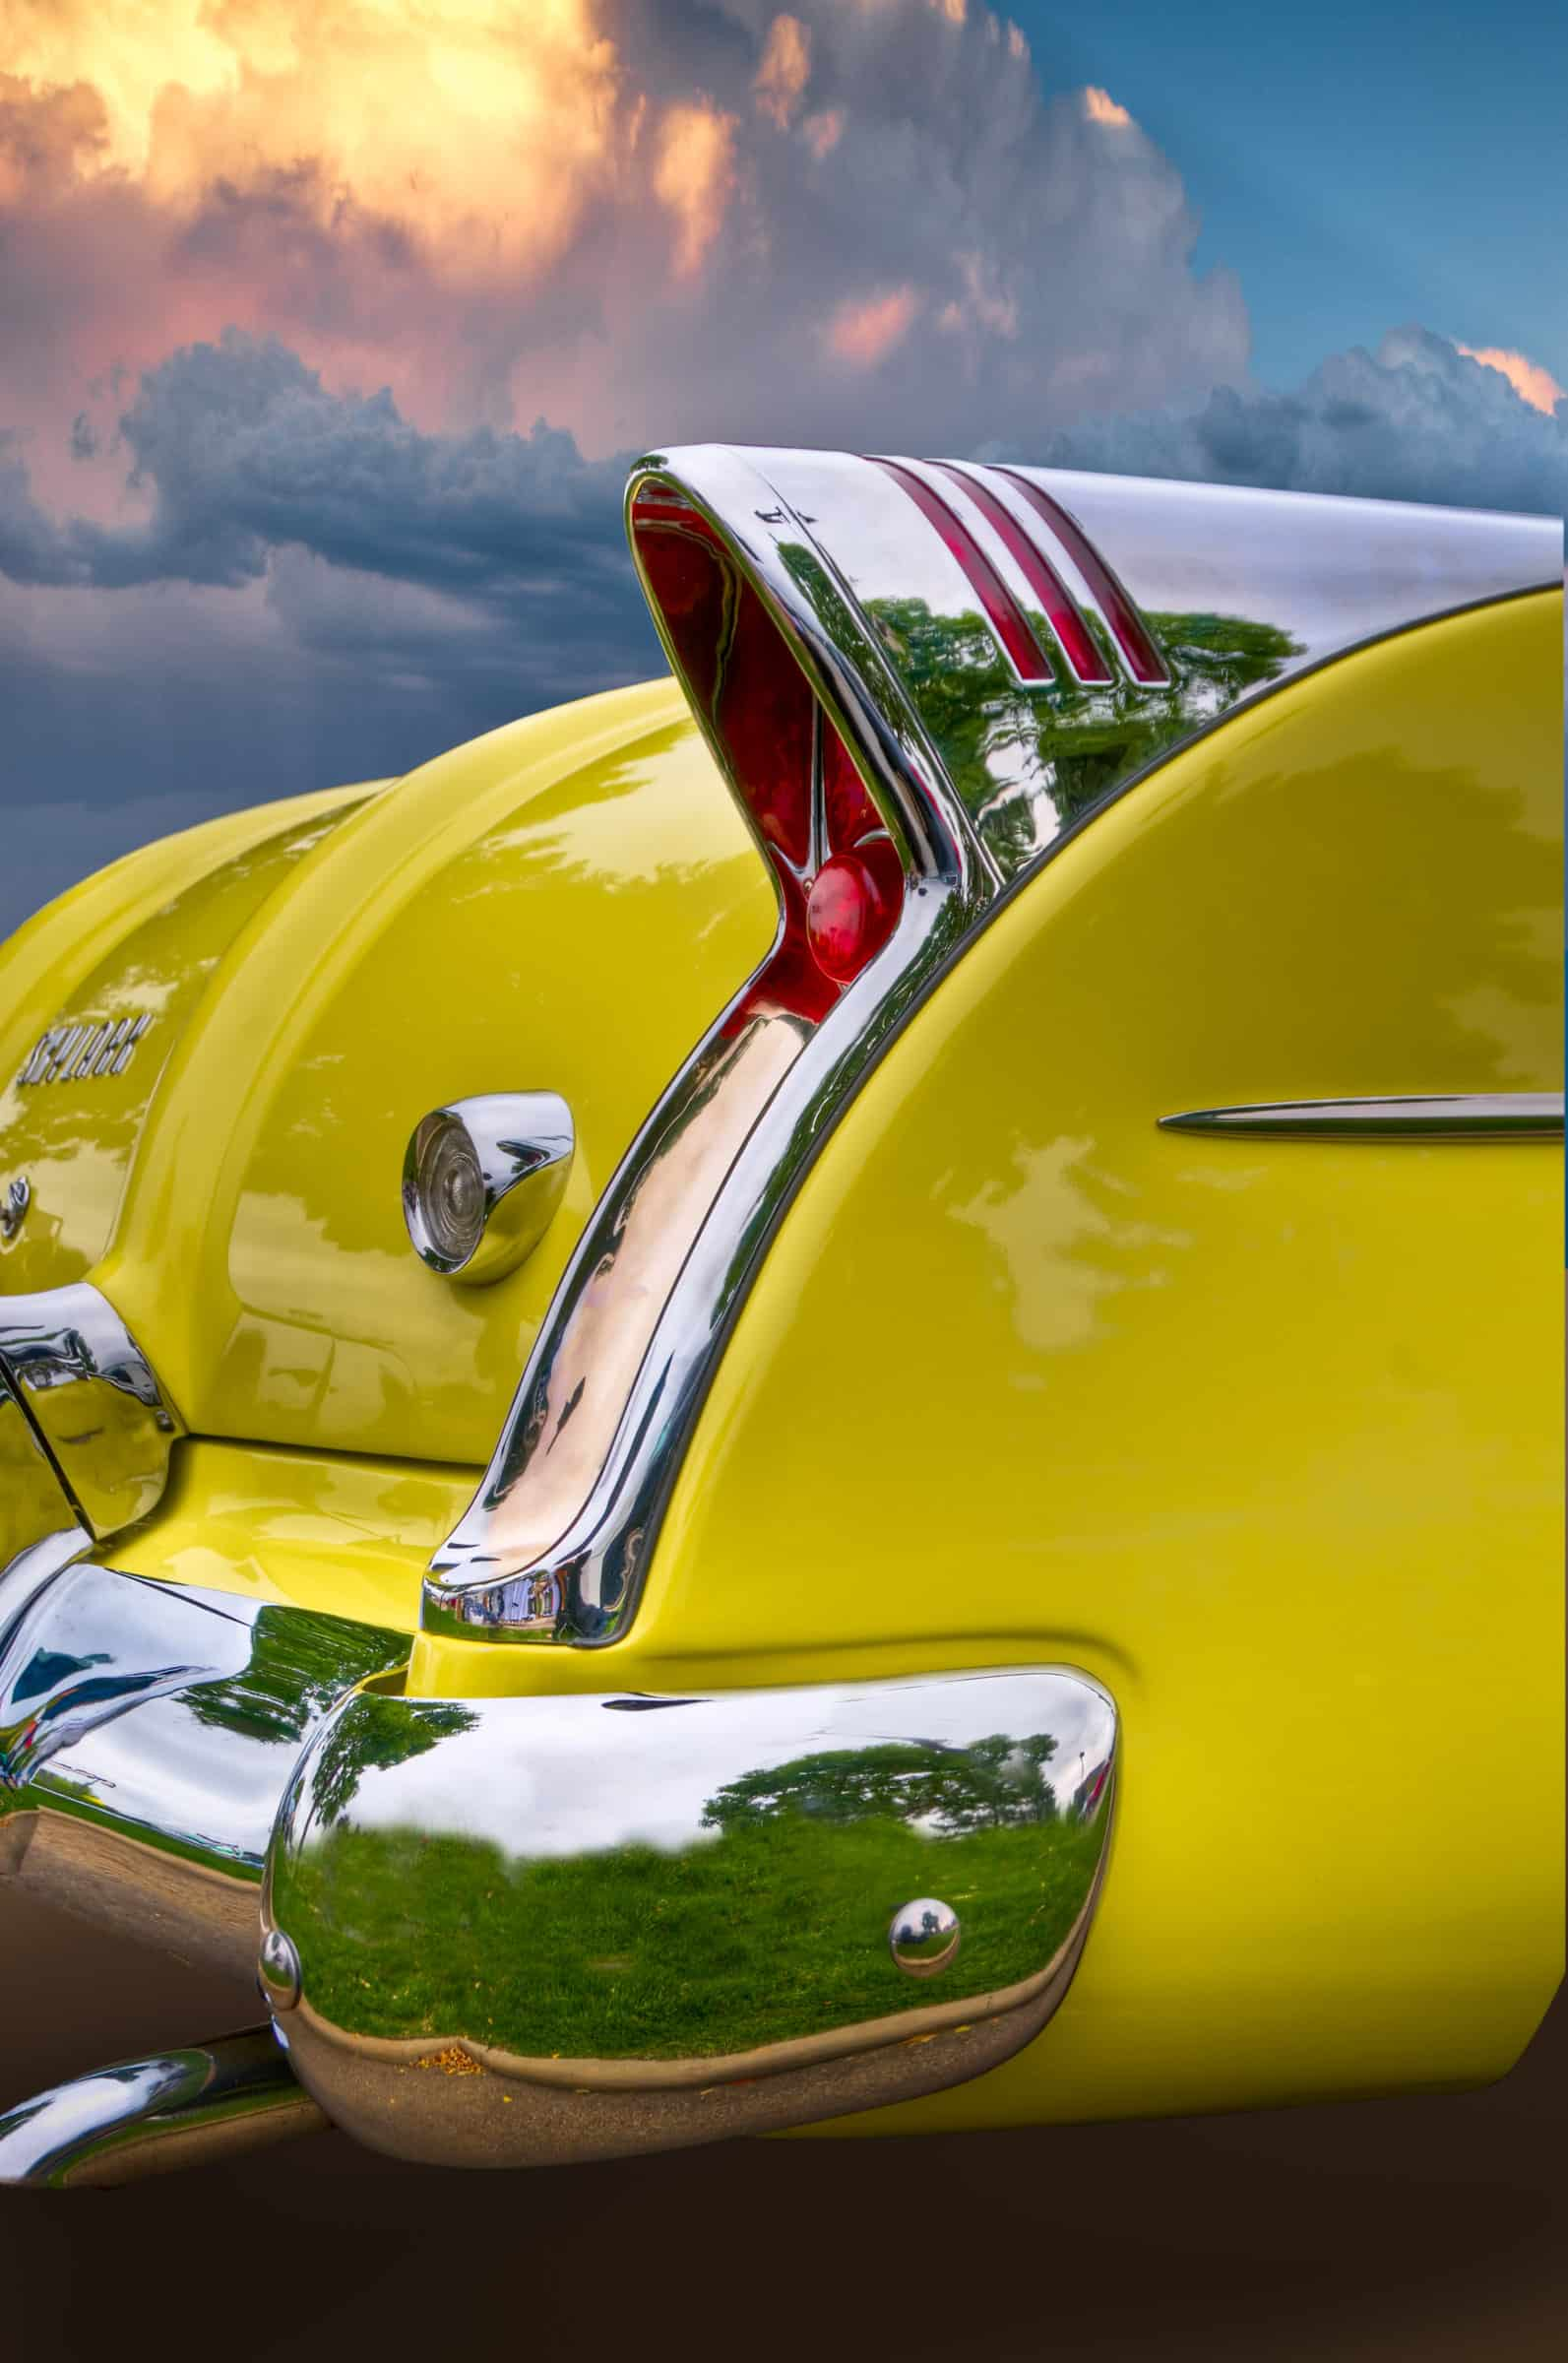 1954 Buick Skylark Sport Convertible - Yellow